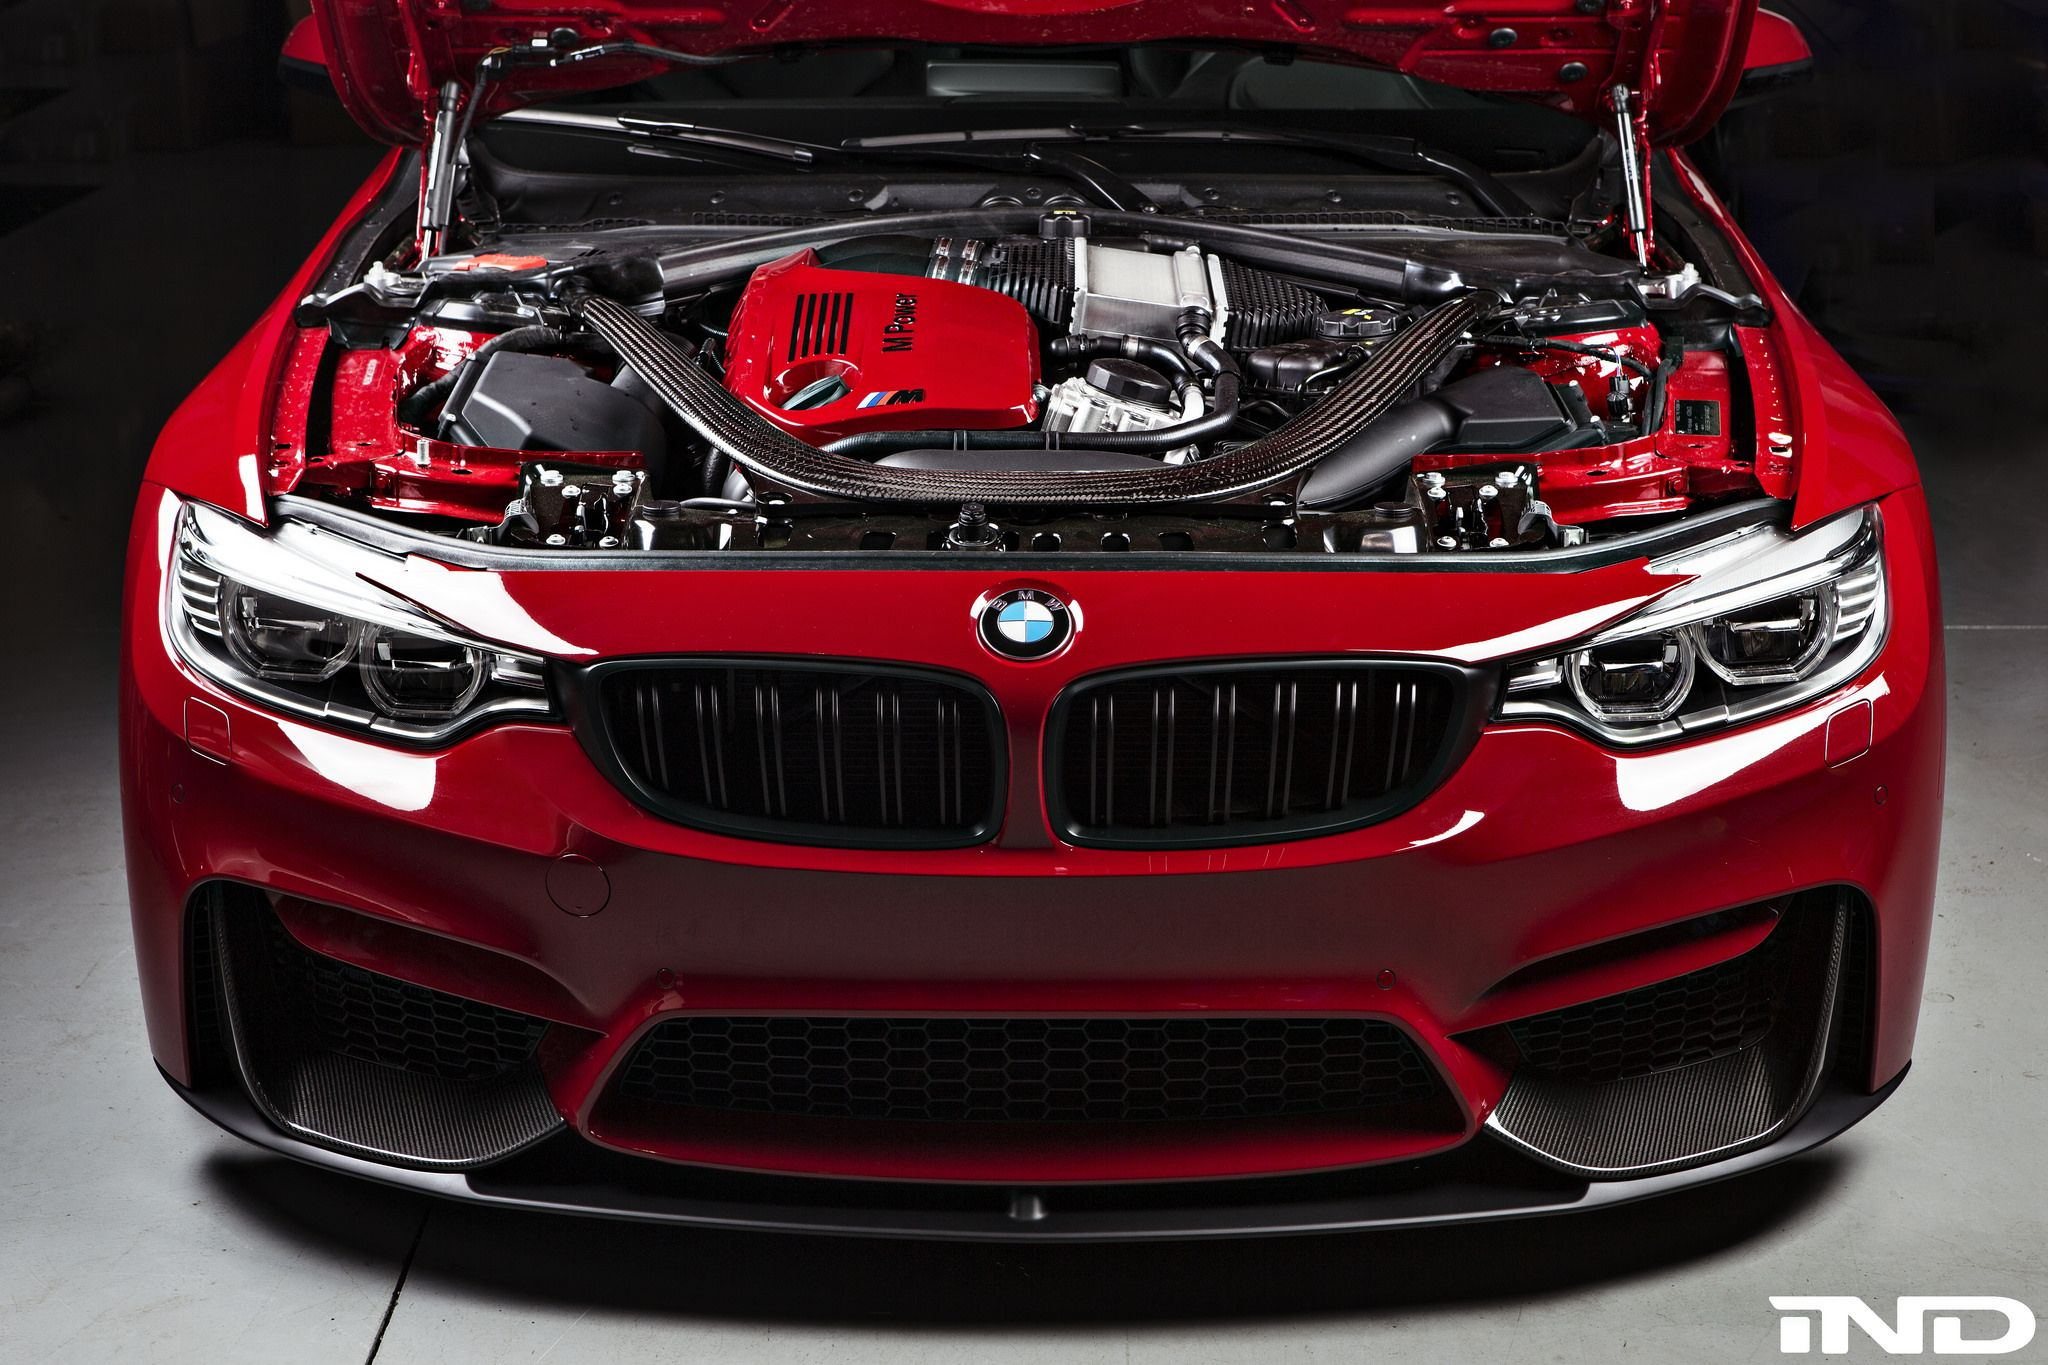 #BMW #F82 #M4 #Coupe #iND #Tuning #Red #Devil #Dragon #Fire #Burn #Provocative #Sexy #Hot #Live #Life #Love #Follow #Your #Heart #BMWLife